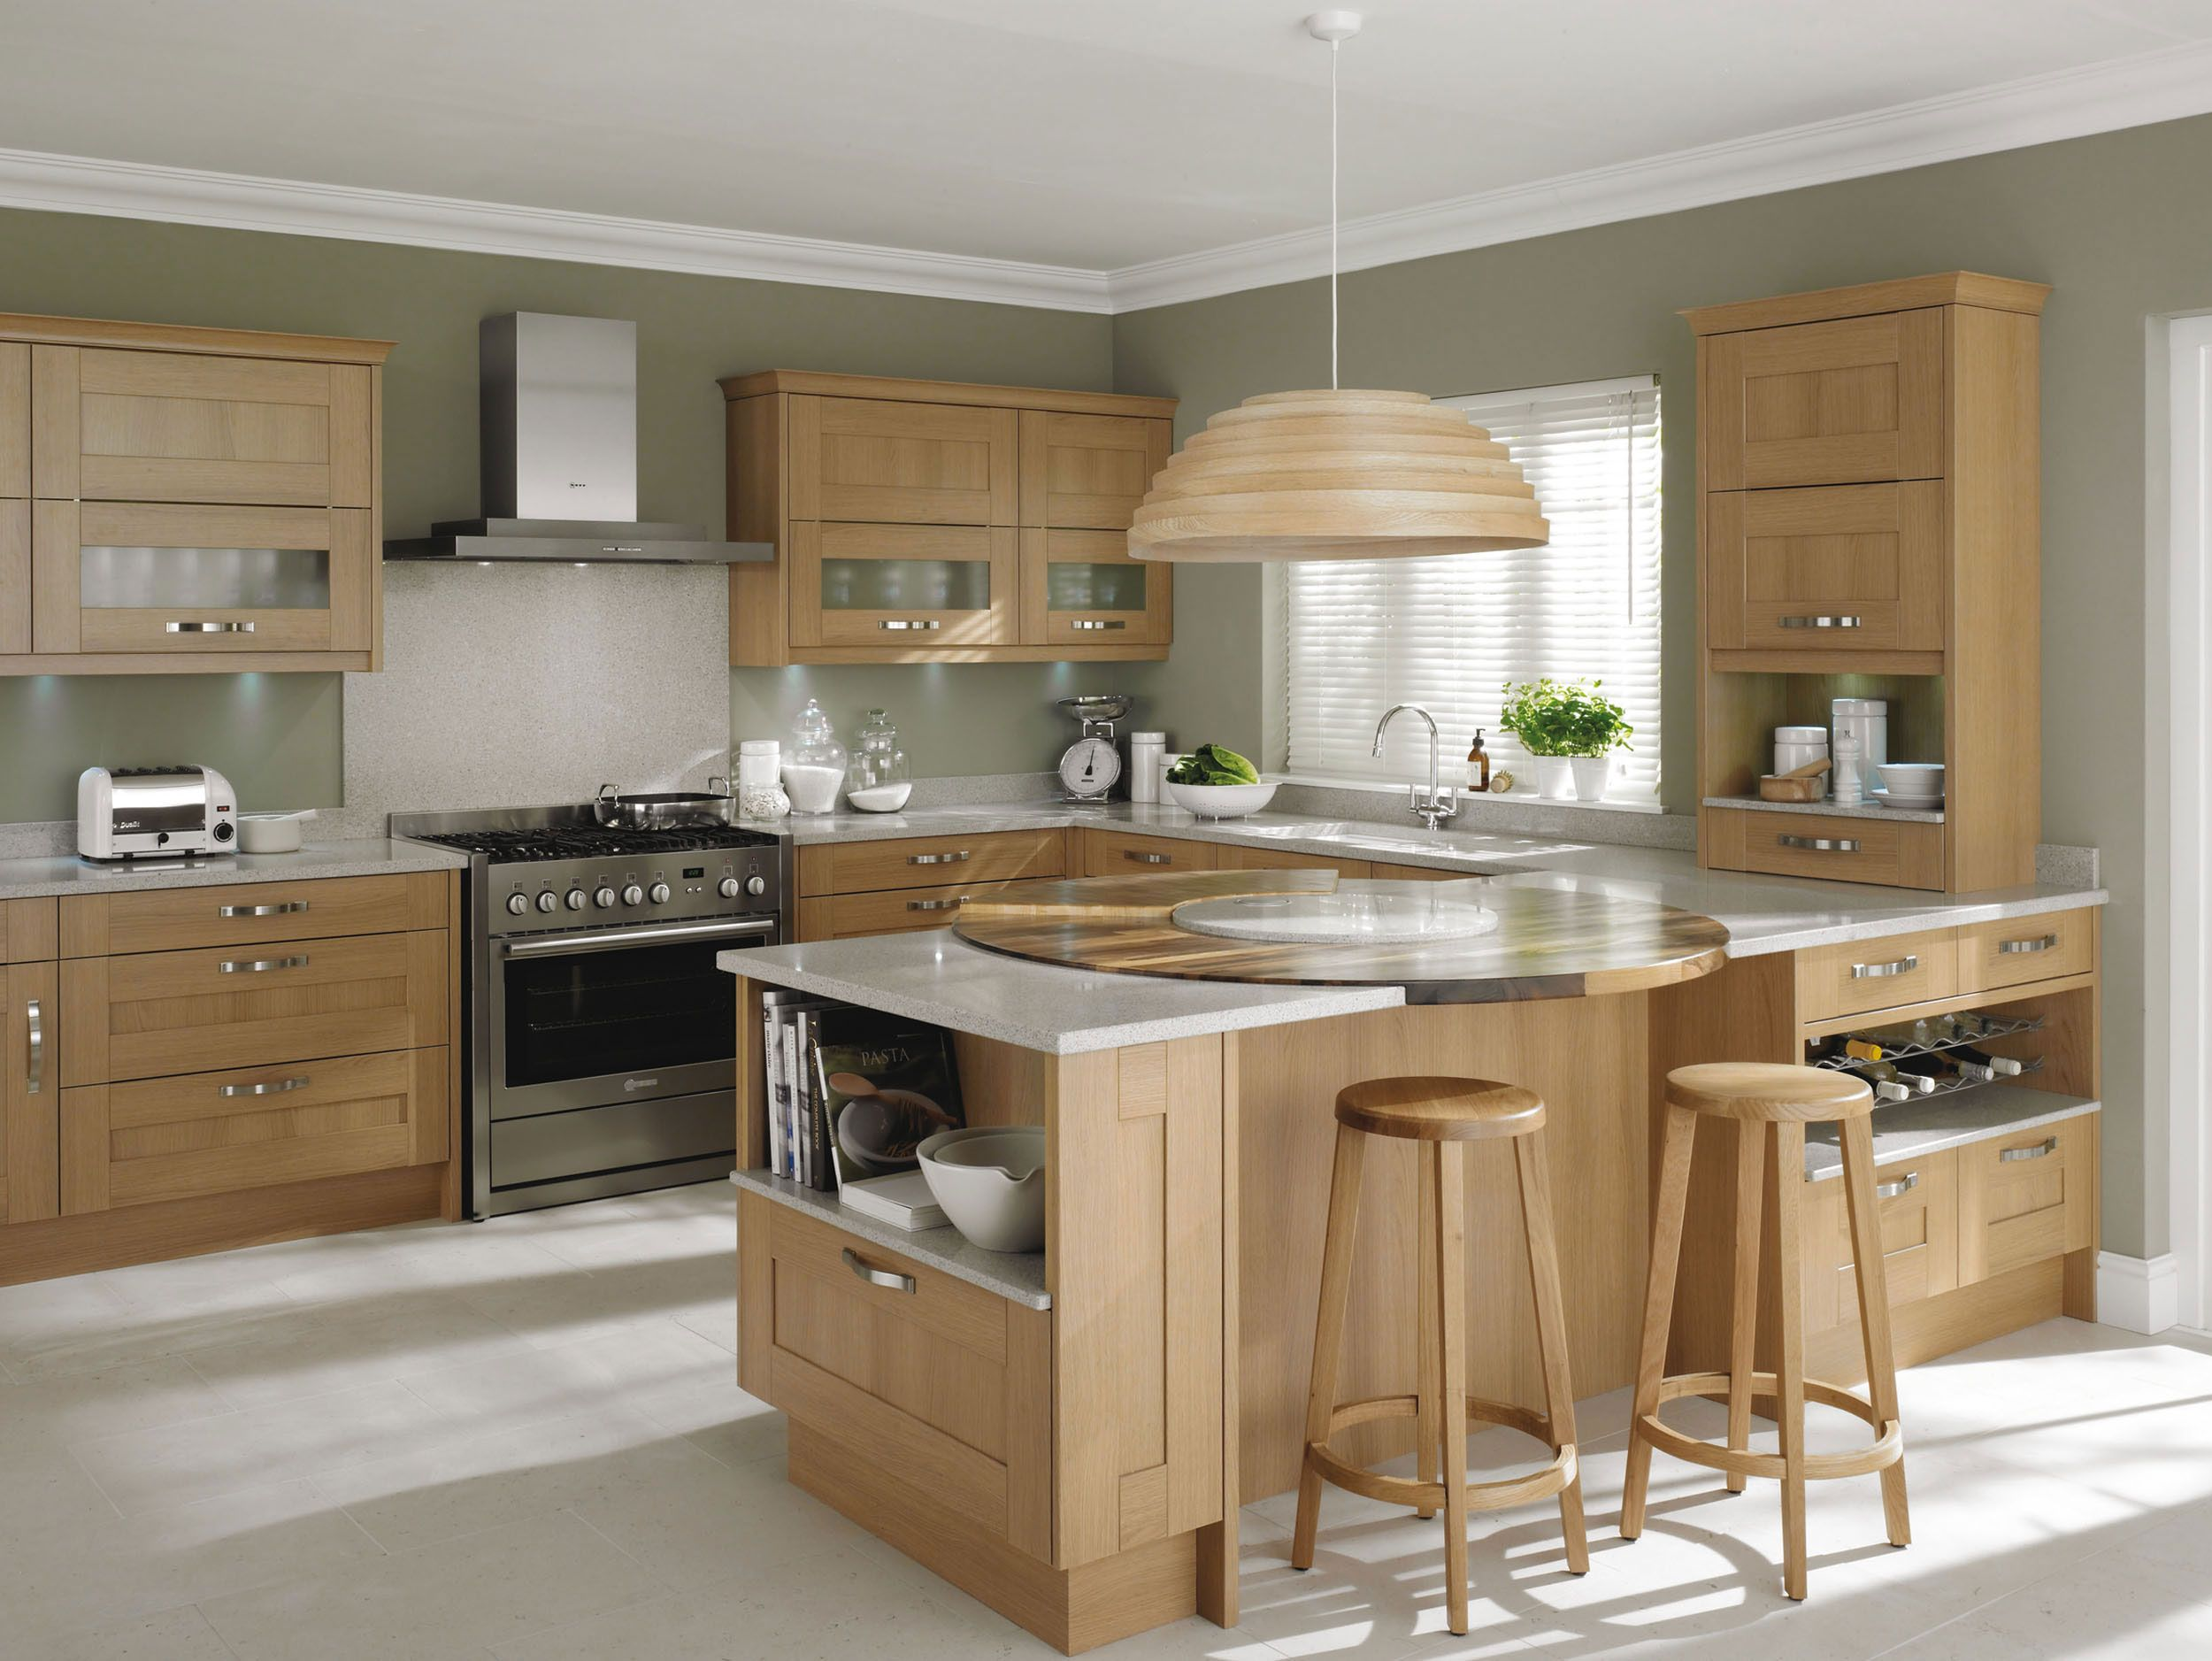 Oak kitchen ideas google search home kitchens for Wooden kitchen cupboards